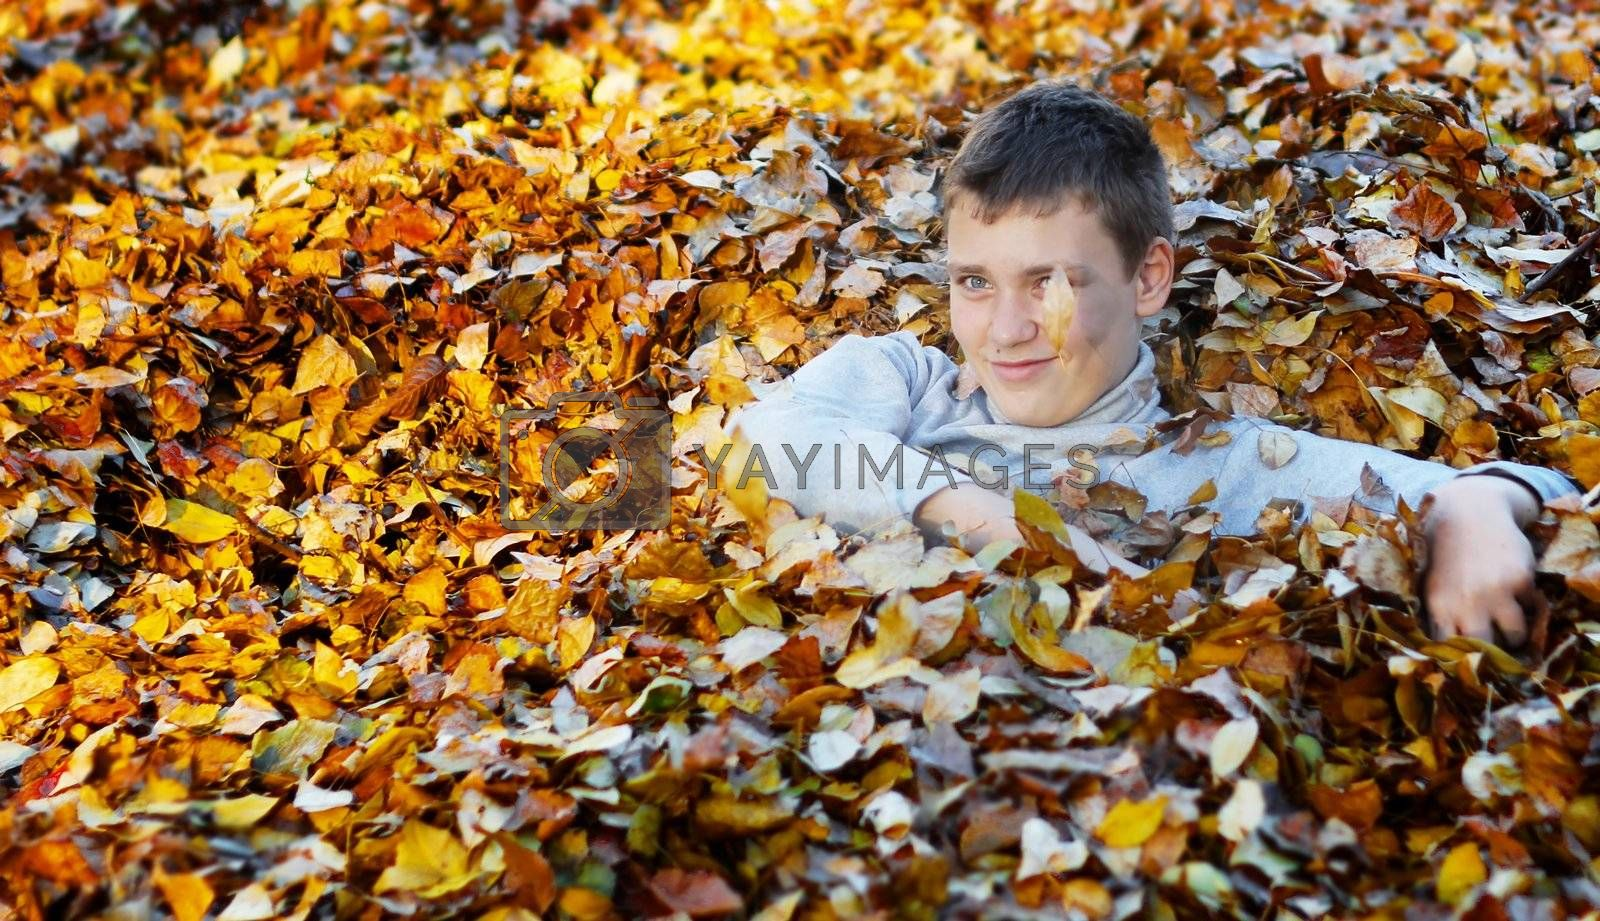 Happy boy in yellow and orange autumn leaves